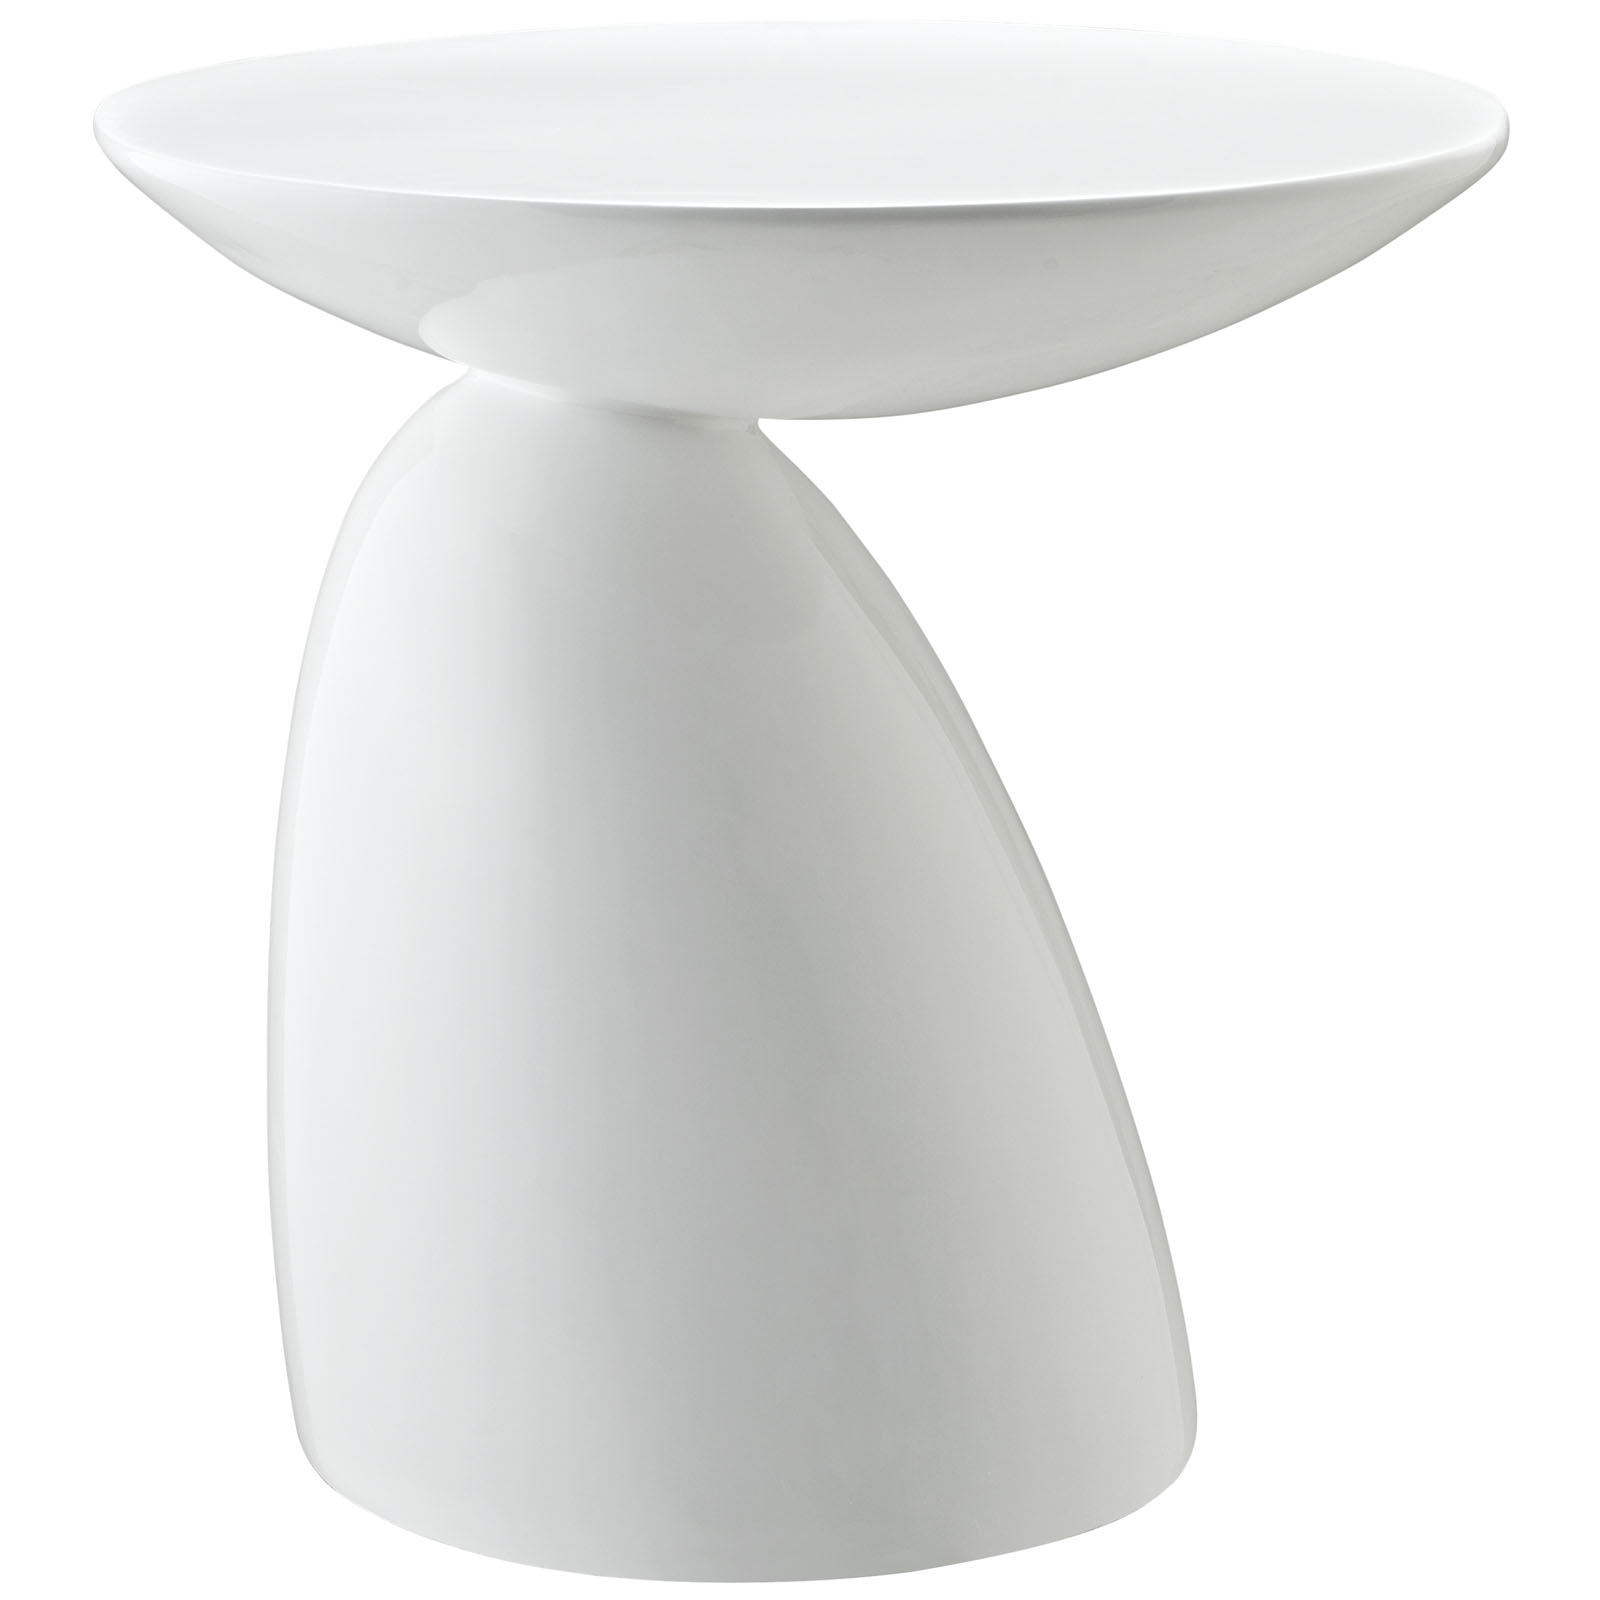 modern contemporary living room side table white accent silver gray marble small round farmhouse teak sofa lucite cube tall lamp short rustic metal legs seat for drums coastal